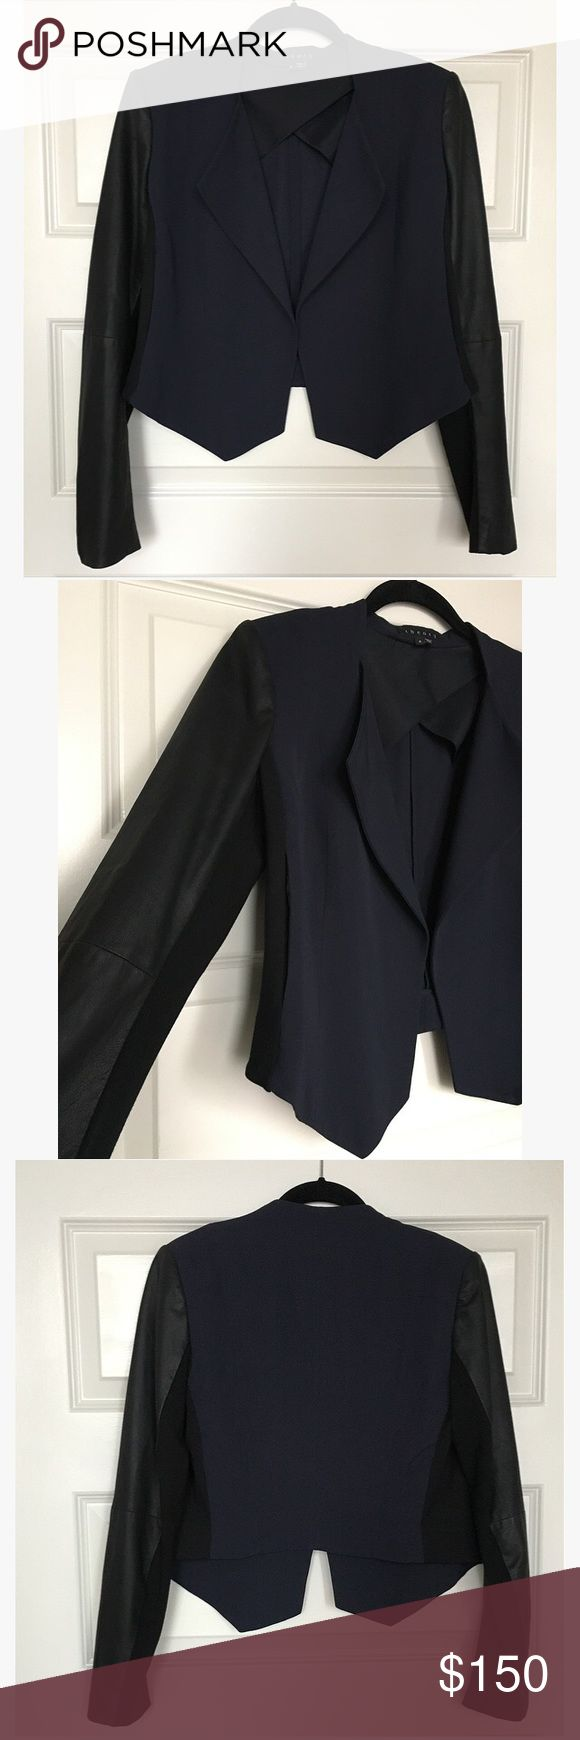 Theory Navy and Black Jacket with Leather Sleeve Theory - Navy and black deconstructed jacket with leather sleeve. Body of the garment is cropped in the back and slightly longer in the front. Body is viscose and sleeves are goat skin with knit inner arm. Thin shoulder pad, no closure, and partially lined. Dry clean only. Worn once. Theory Jackets & Coats Blazers